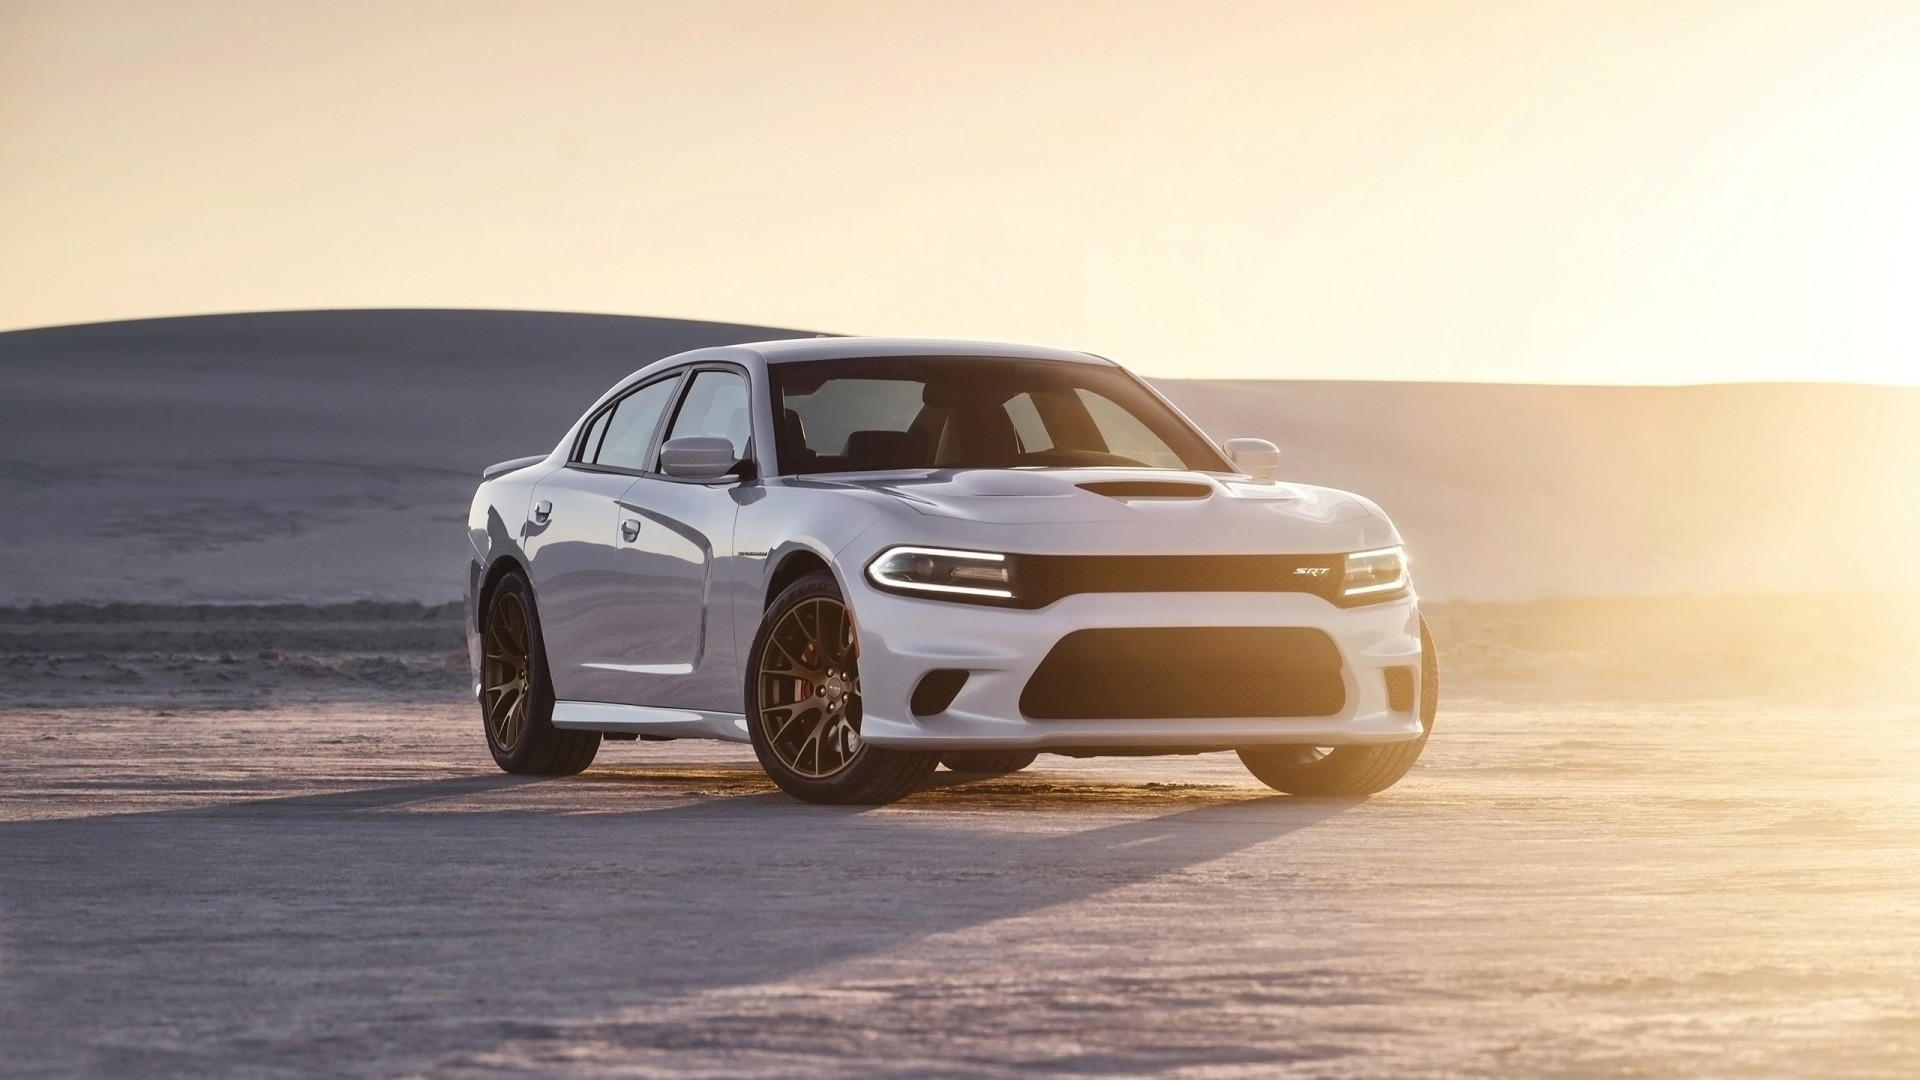 charger hellcat dodge srt hd wallpapers 1080 1920 2560 american 1440